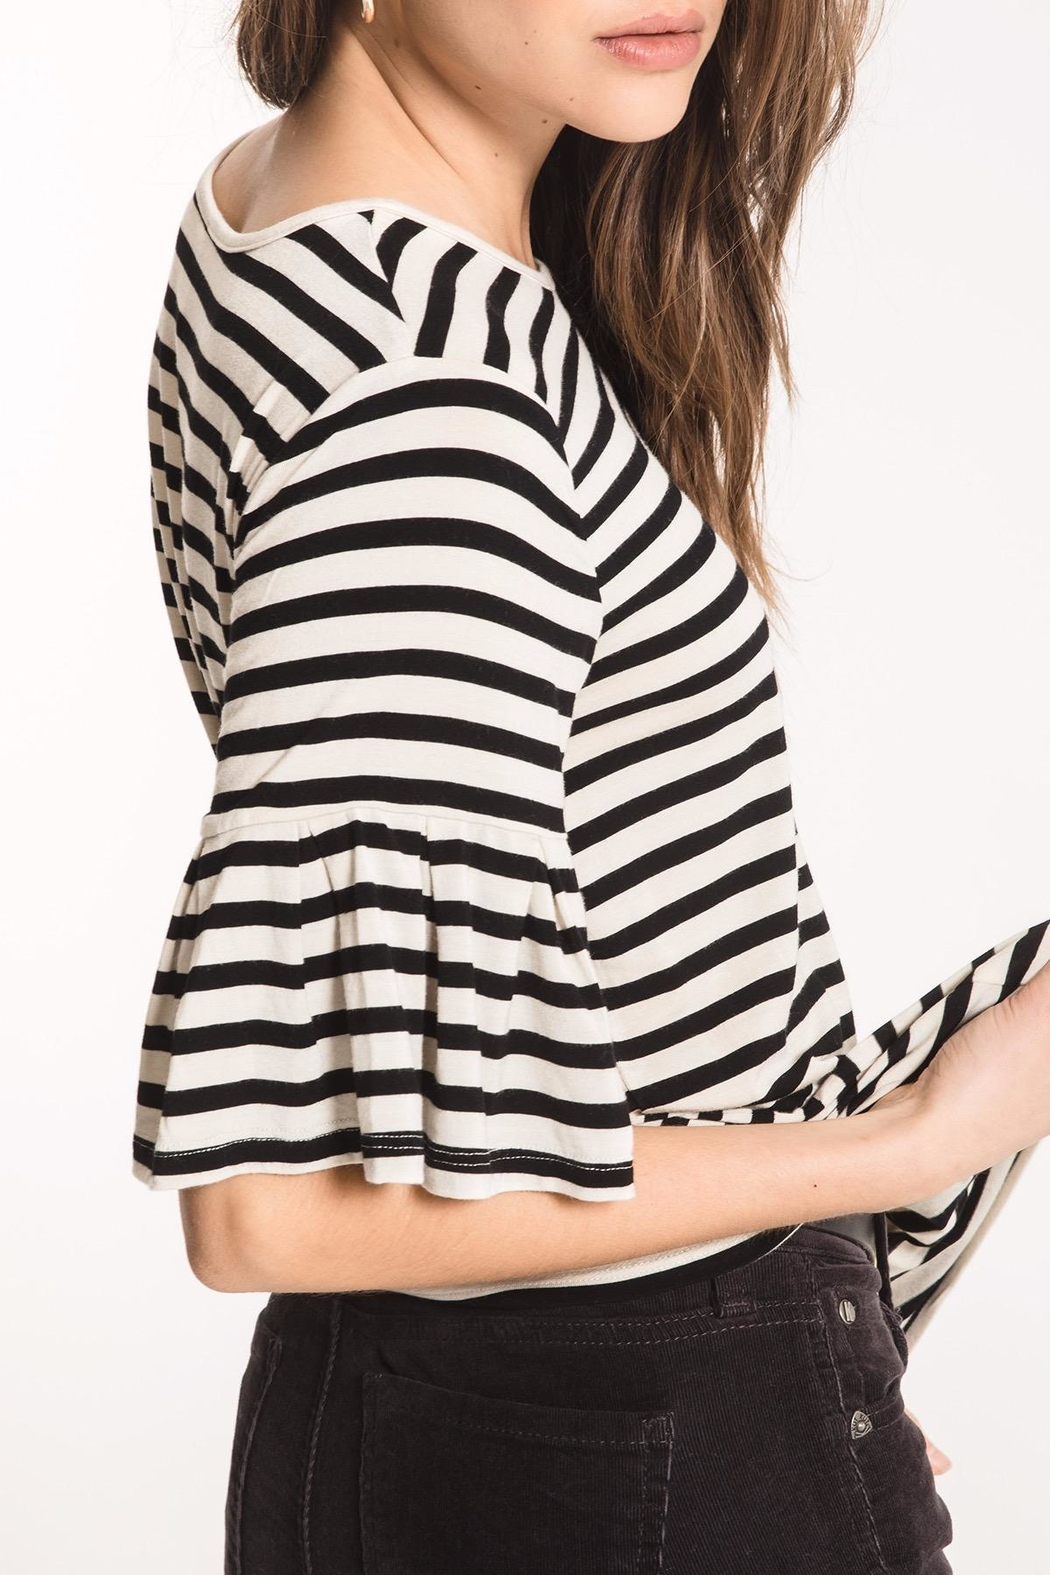 z supply Striped Ruffle Tee - Front Full Image